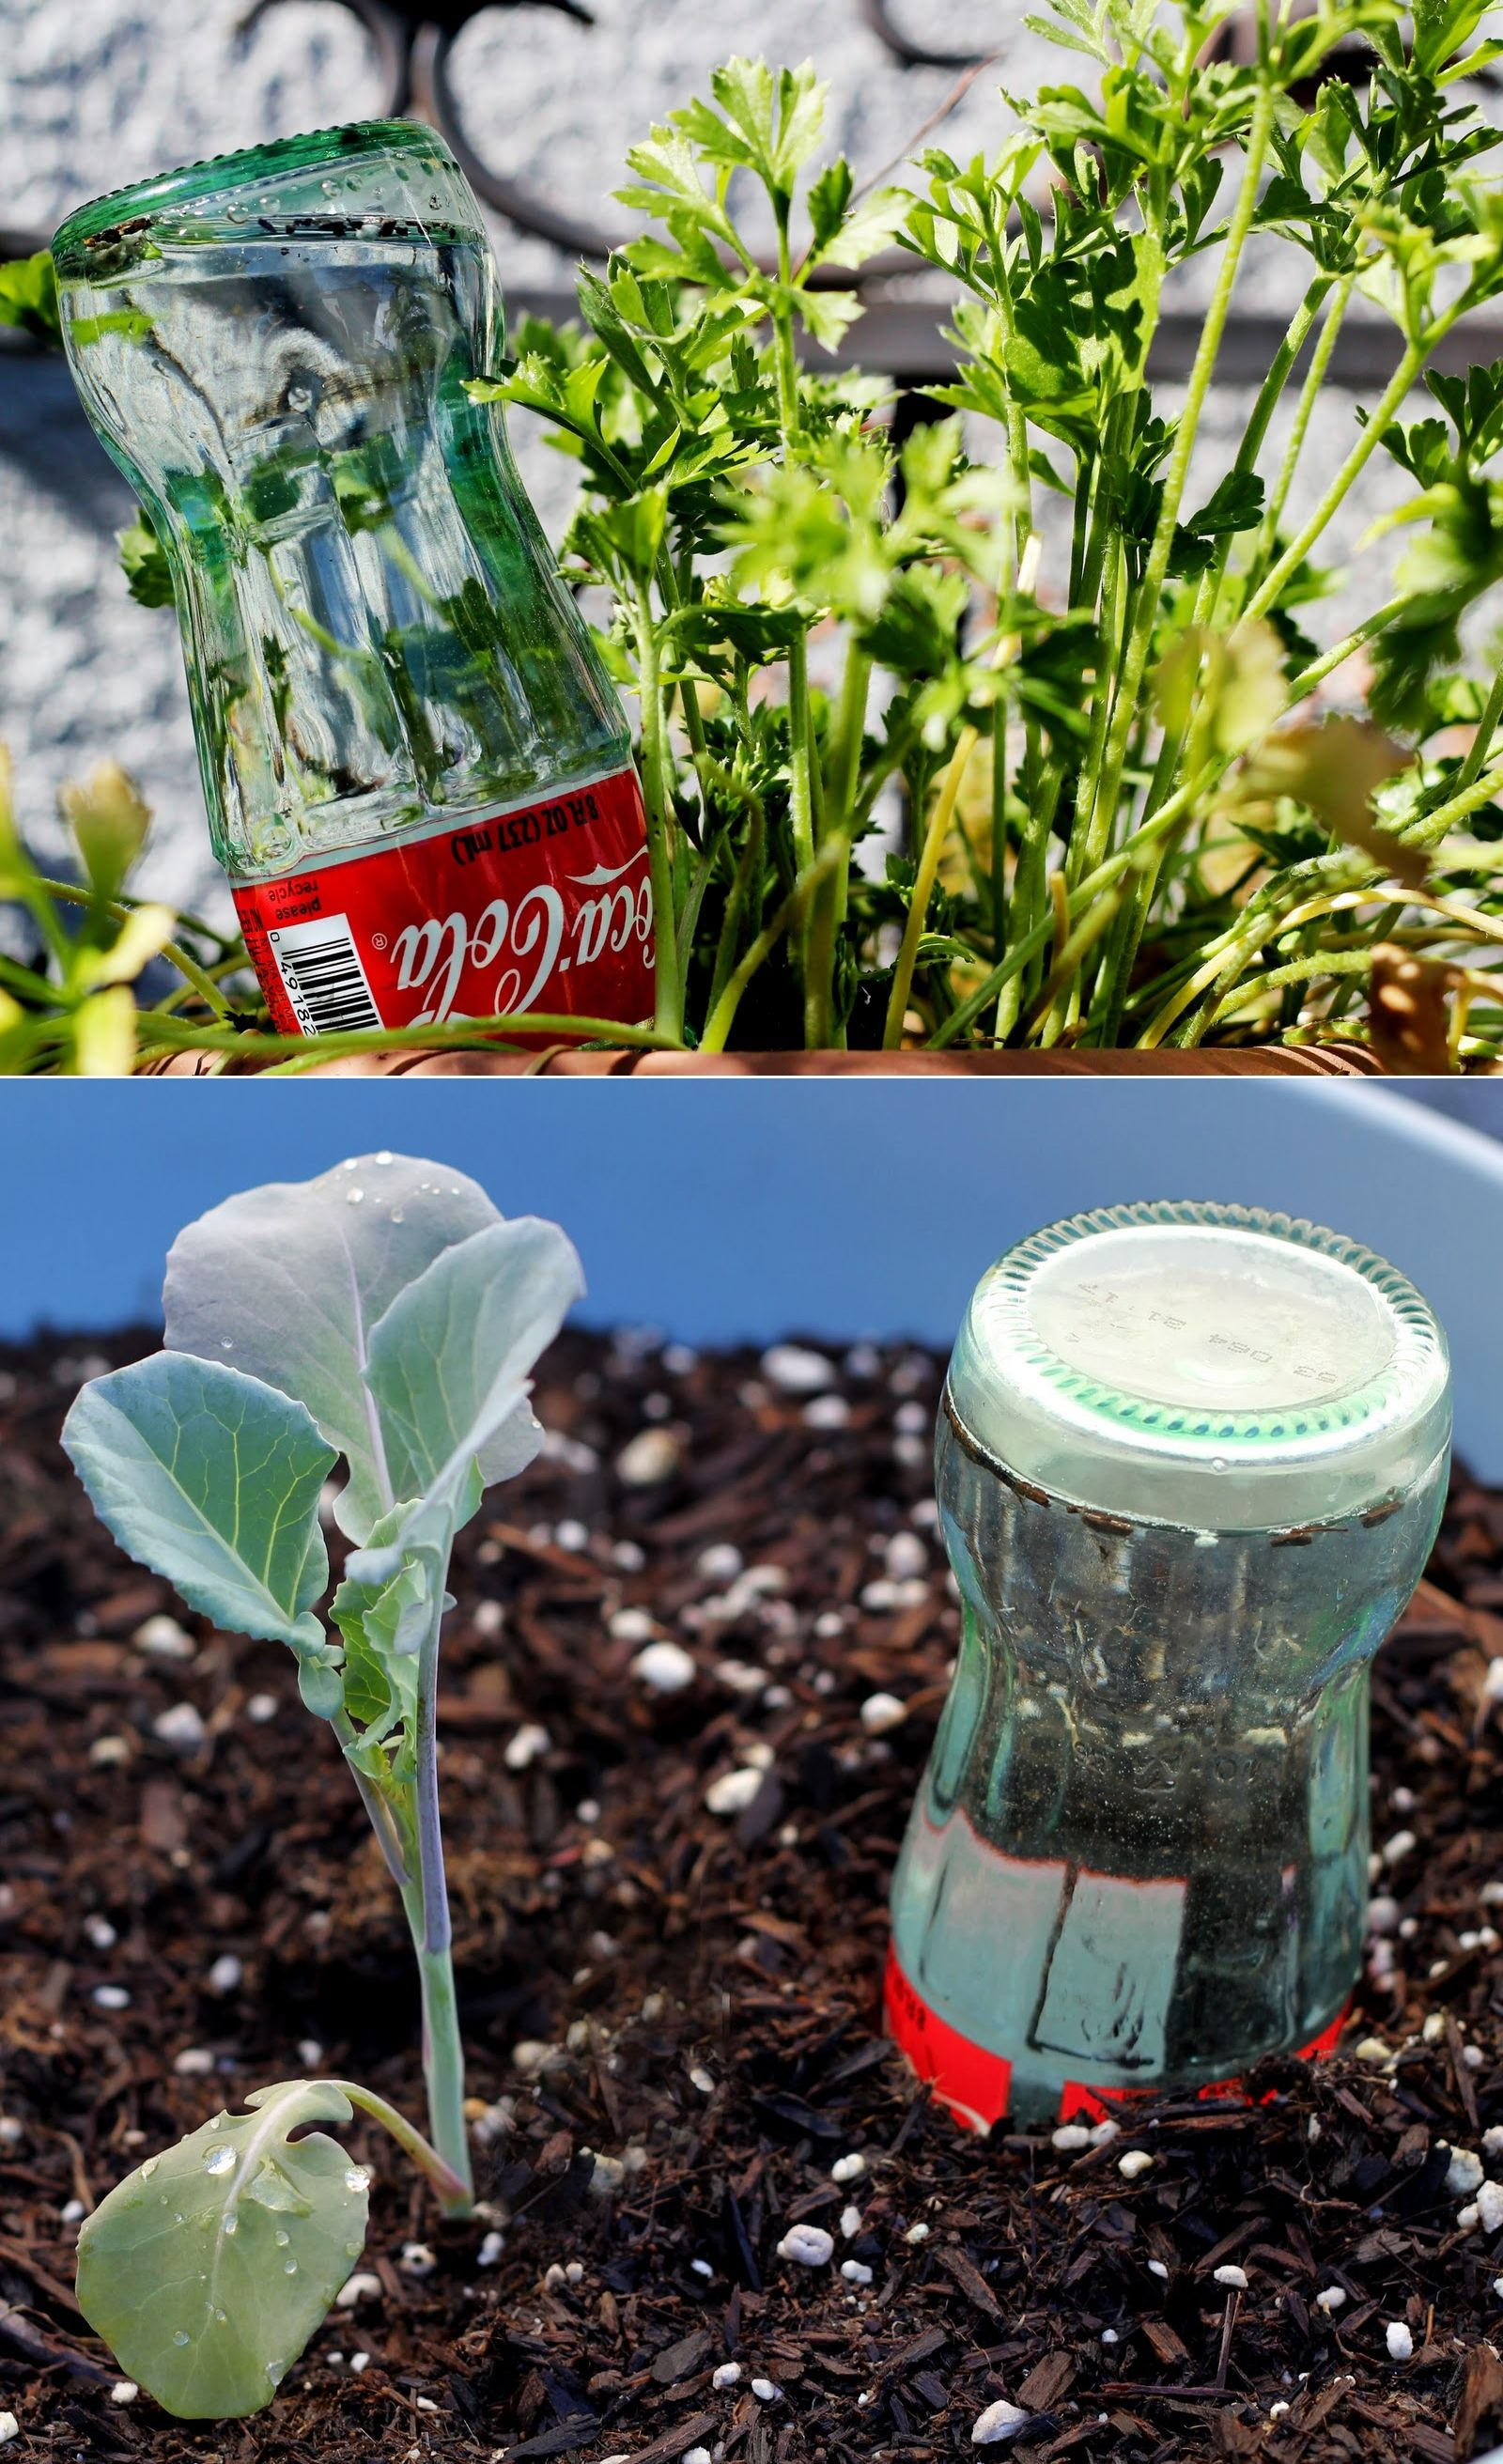 Creative Reuse Glass Bottle Watering Globes Plants Watering Globe Lawn And Garden